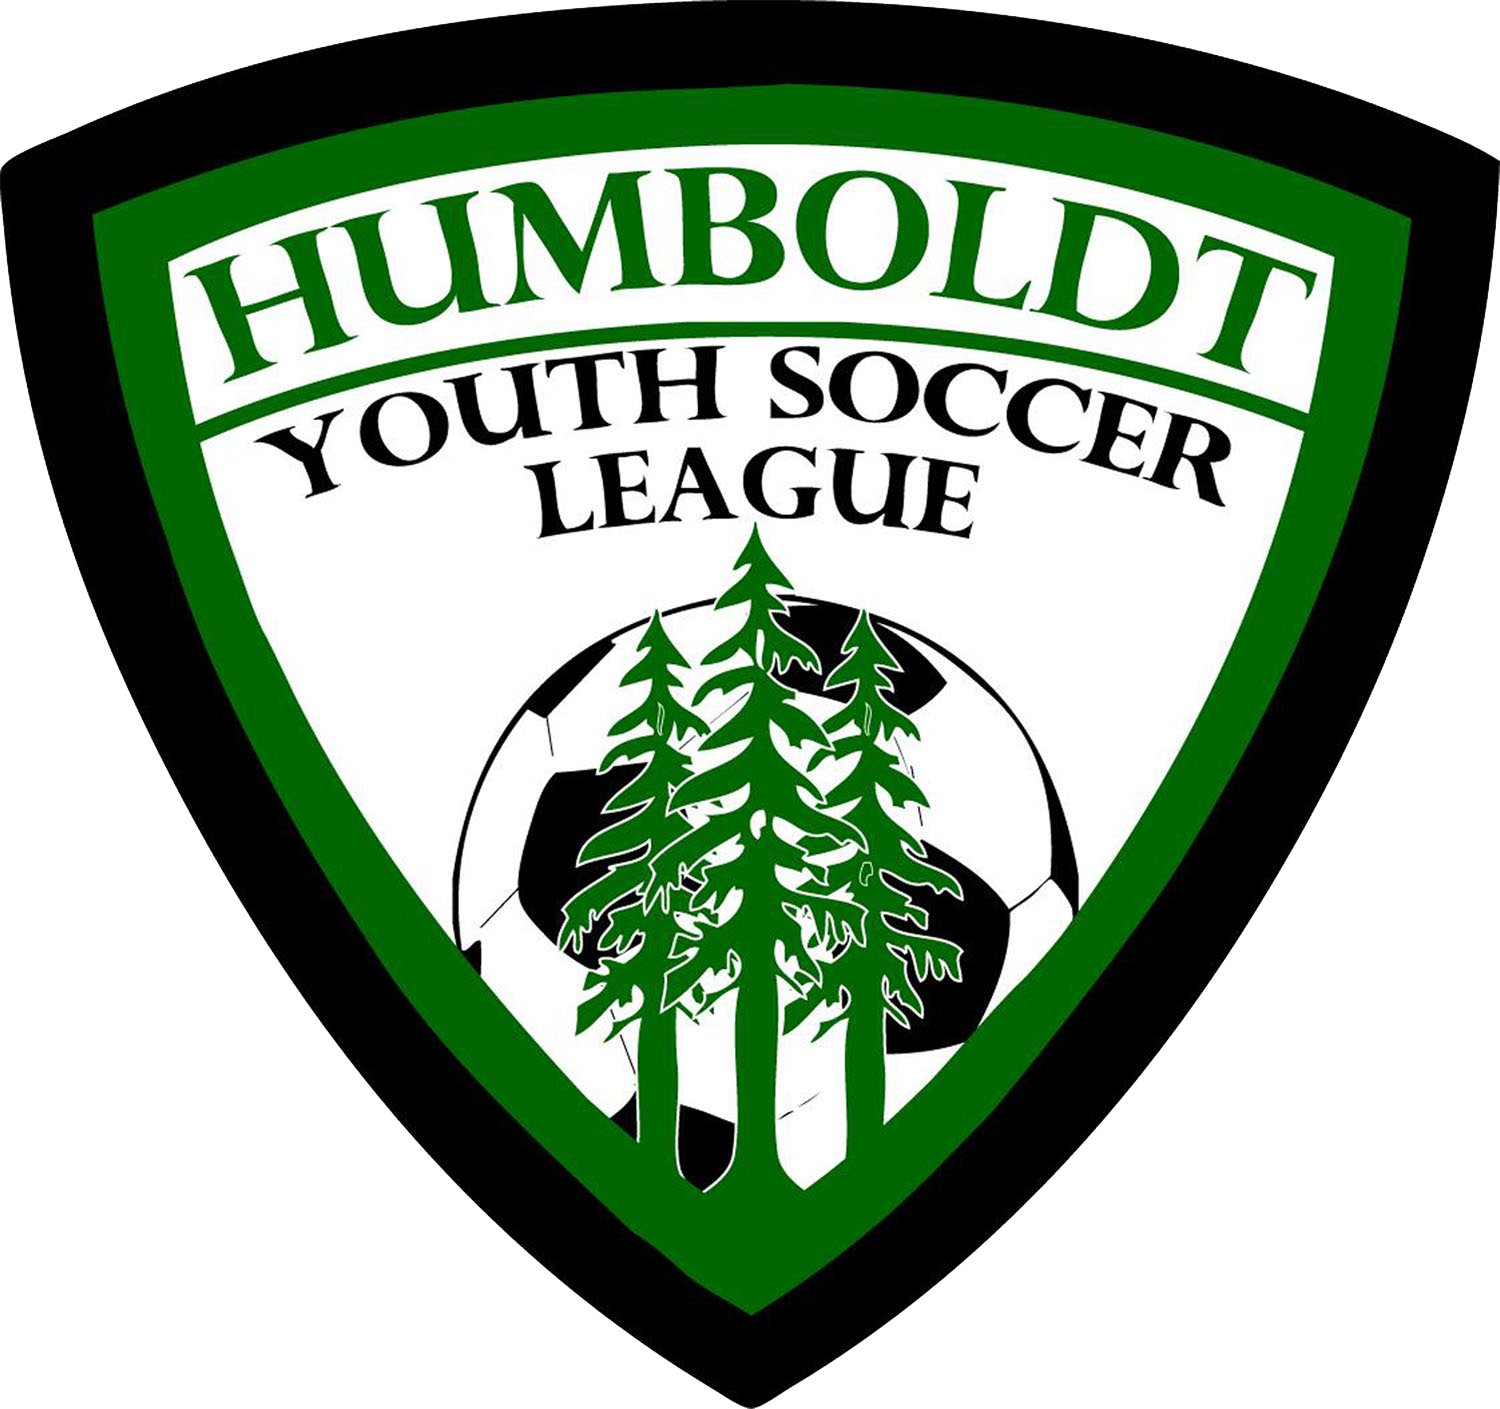 Humboldt Youth Soccer League